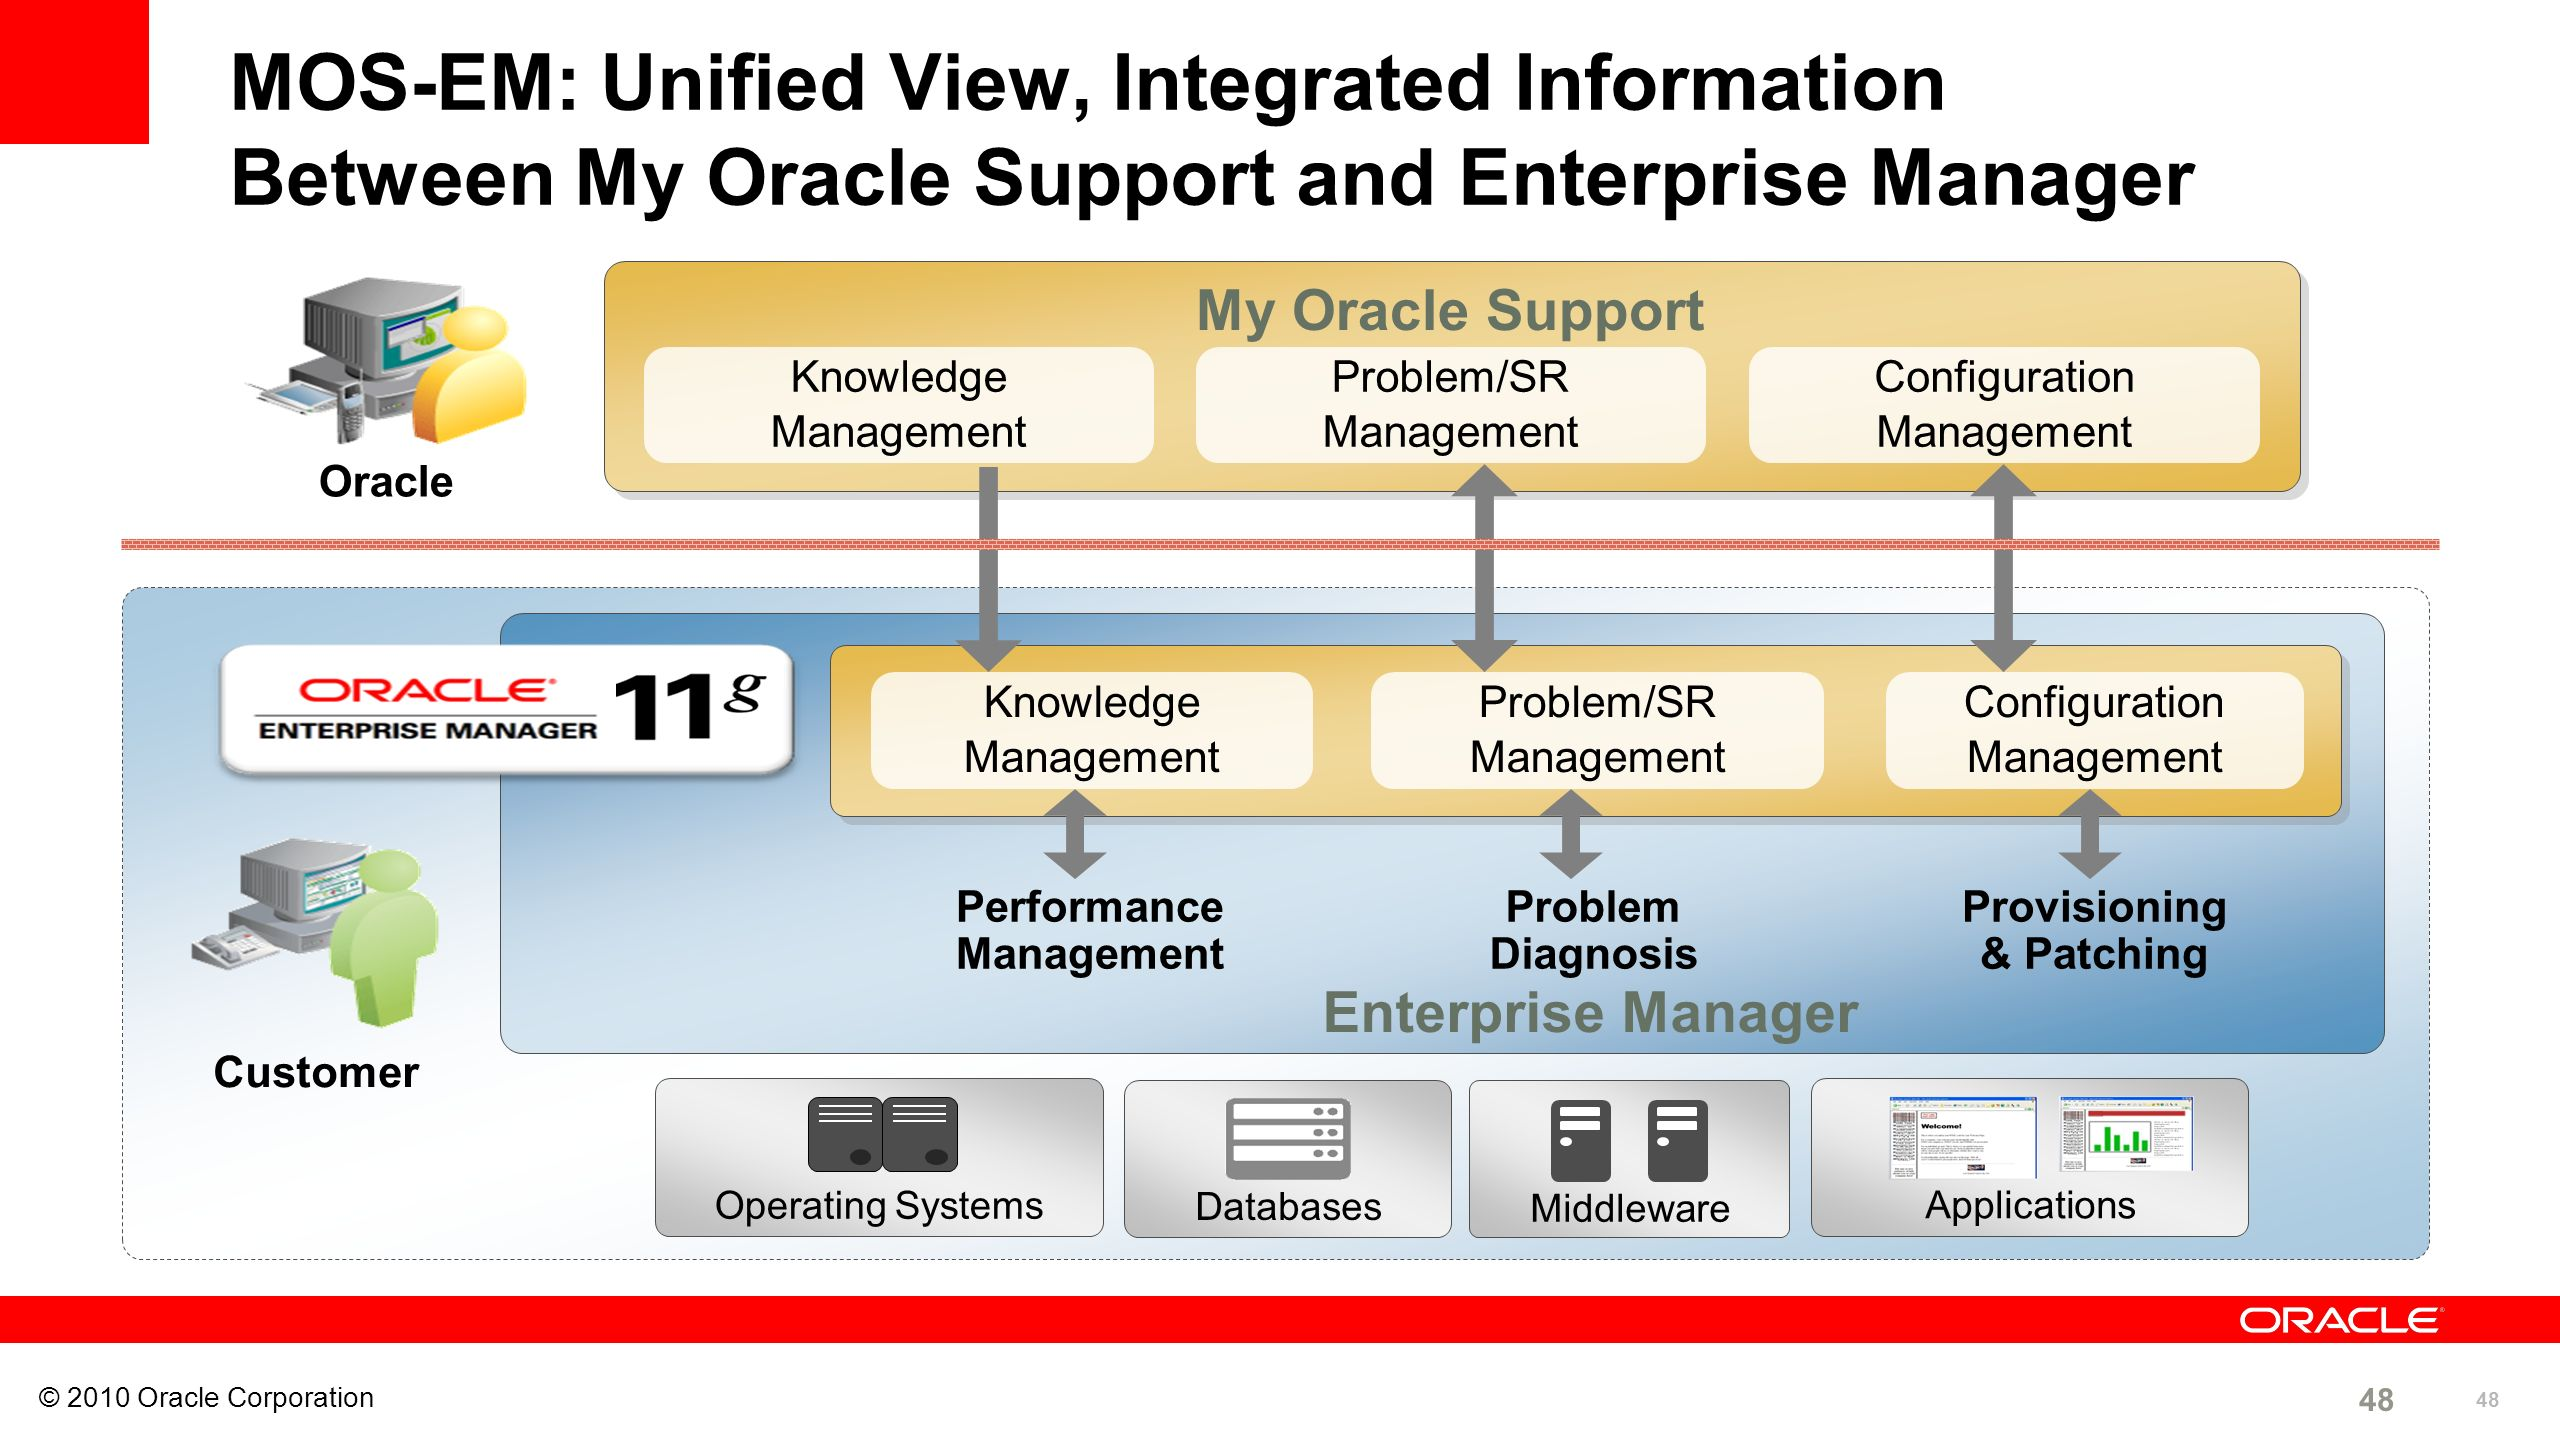 48 © 2010 Oracle Corporation 48 My Oracle Support Performance Management Enterprise Manager Provisioning & Patching Problem Diagnosis MOS-EM: Unified